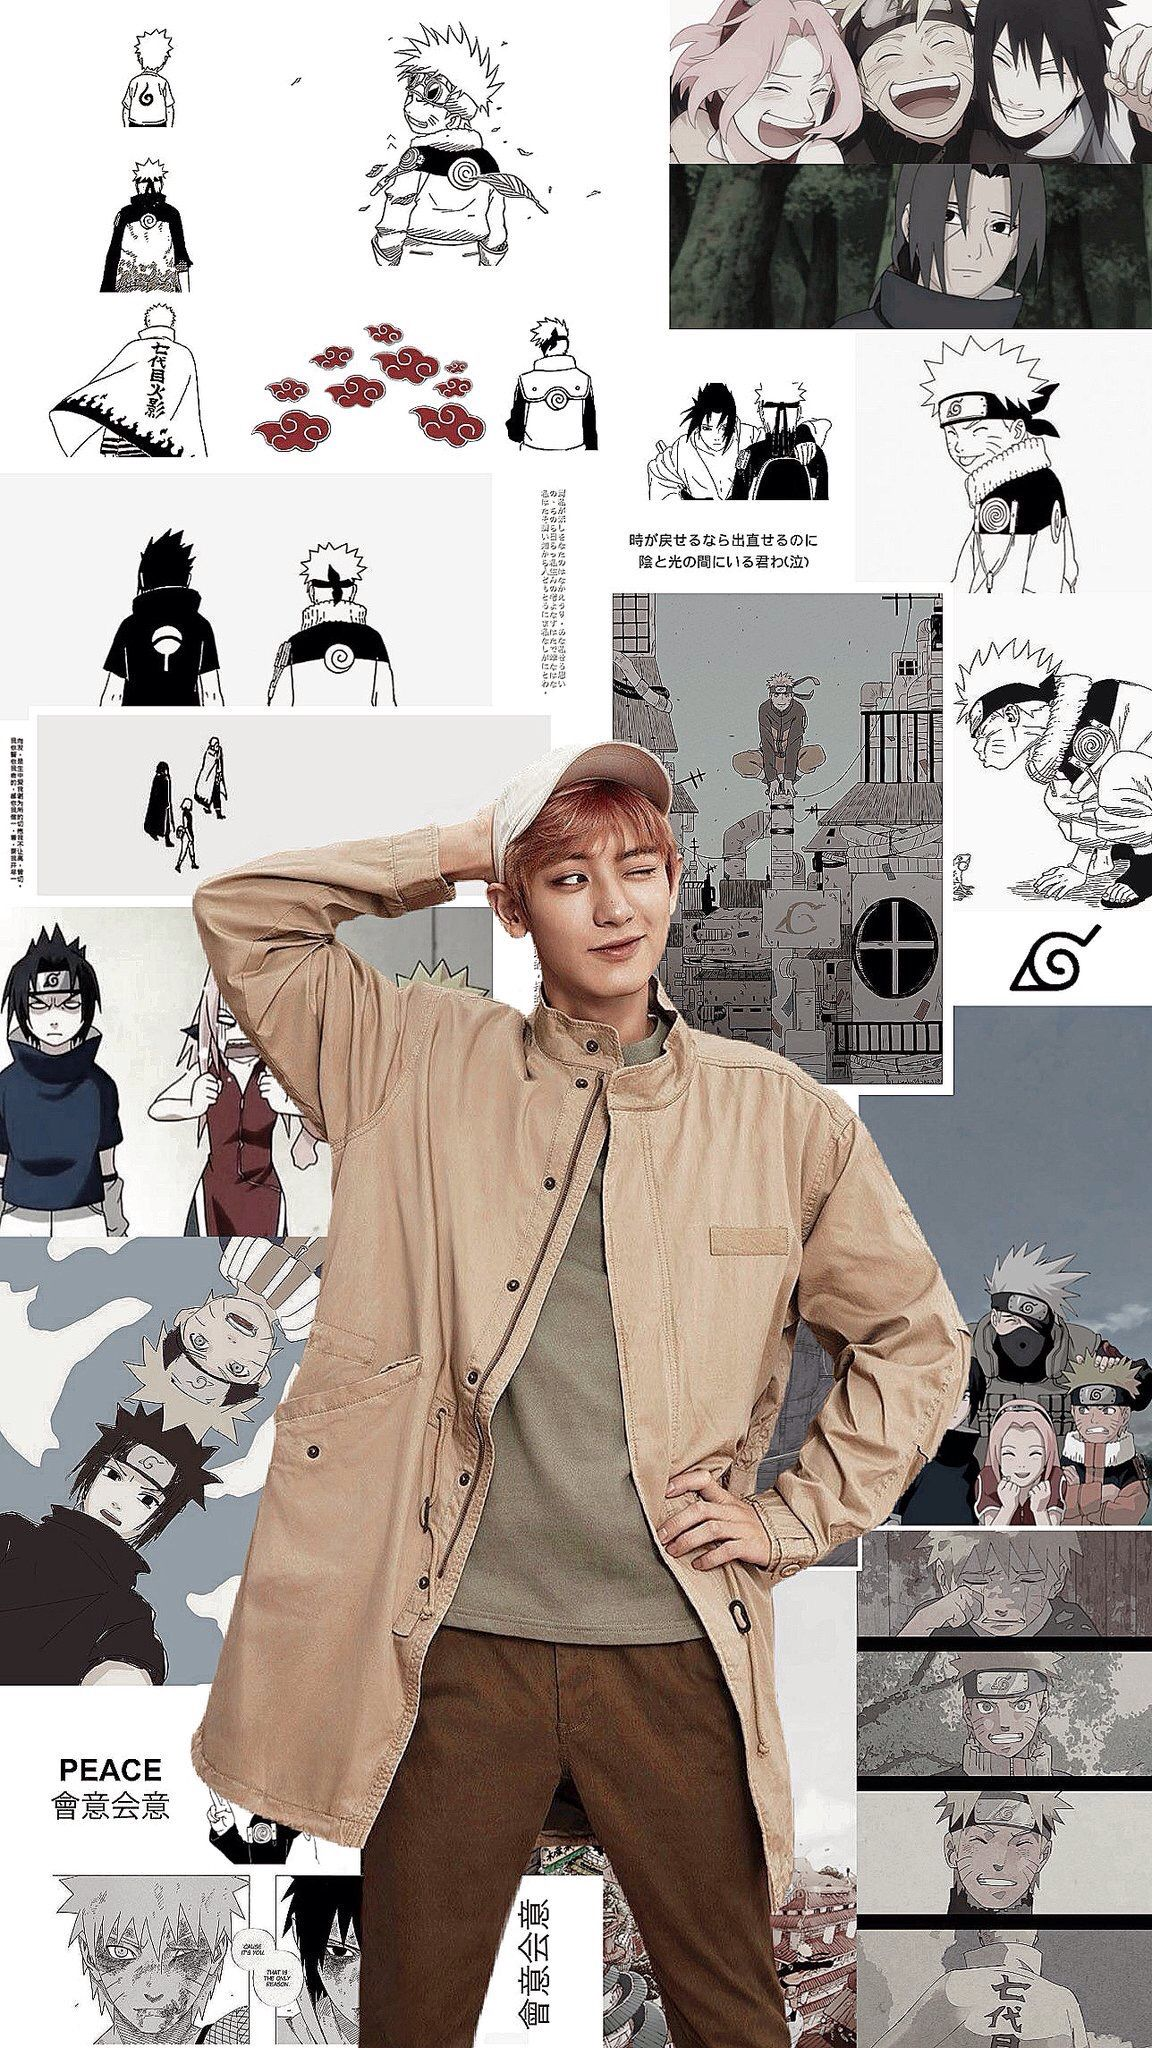 Latest Funny Anime exo locks   (@exowllpp) / Twitter chanyeol and naruto.  #chanyeol #naruto #exo #exowallpaper #anime #kpop #realpcy #kpopwallpaper #aesthetic 11